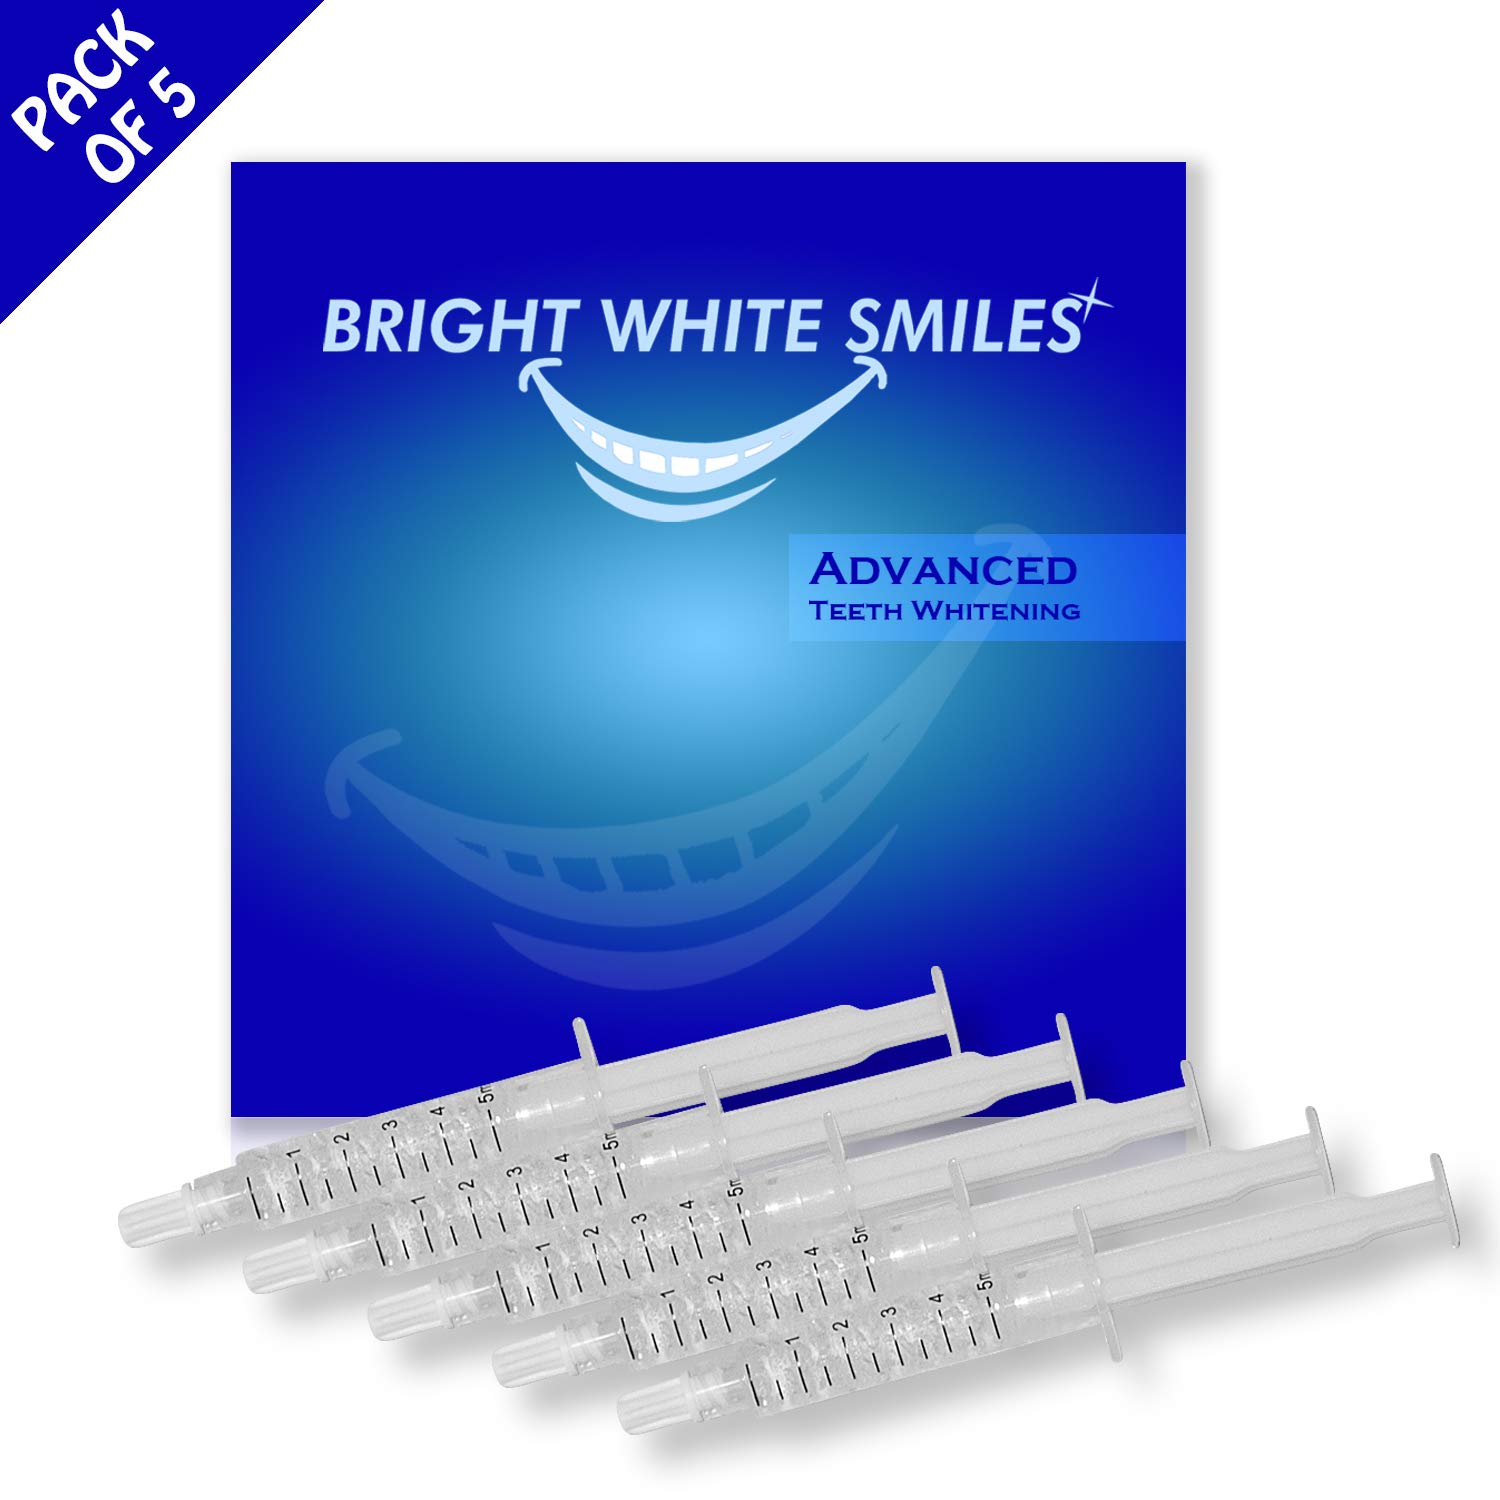 Bright White Smiles Teeth Whitening Kit, 35% Carbamide Peroxide Gel for Professional Results at Home